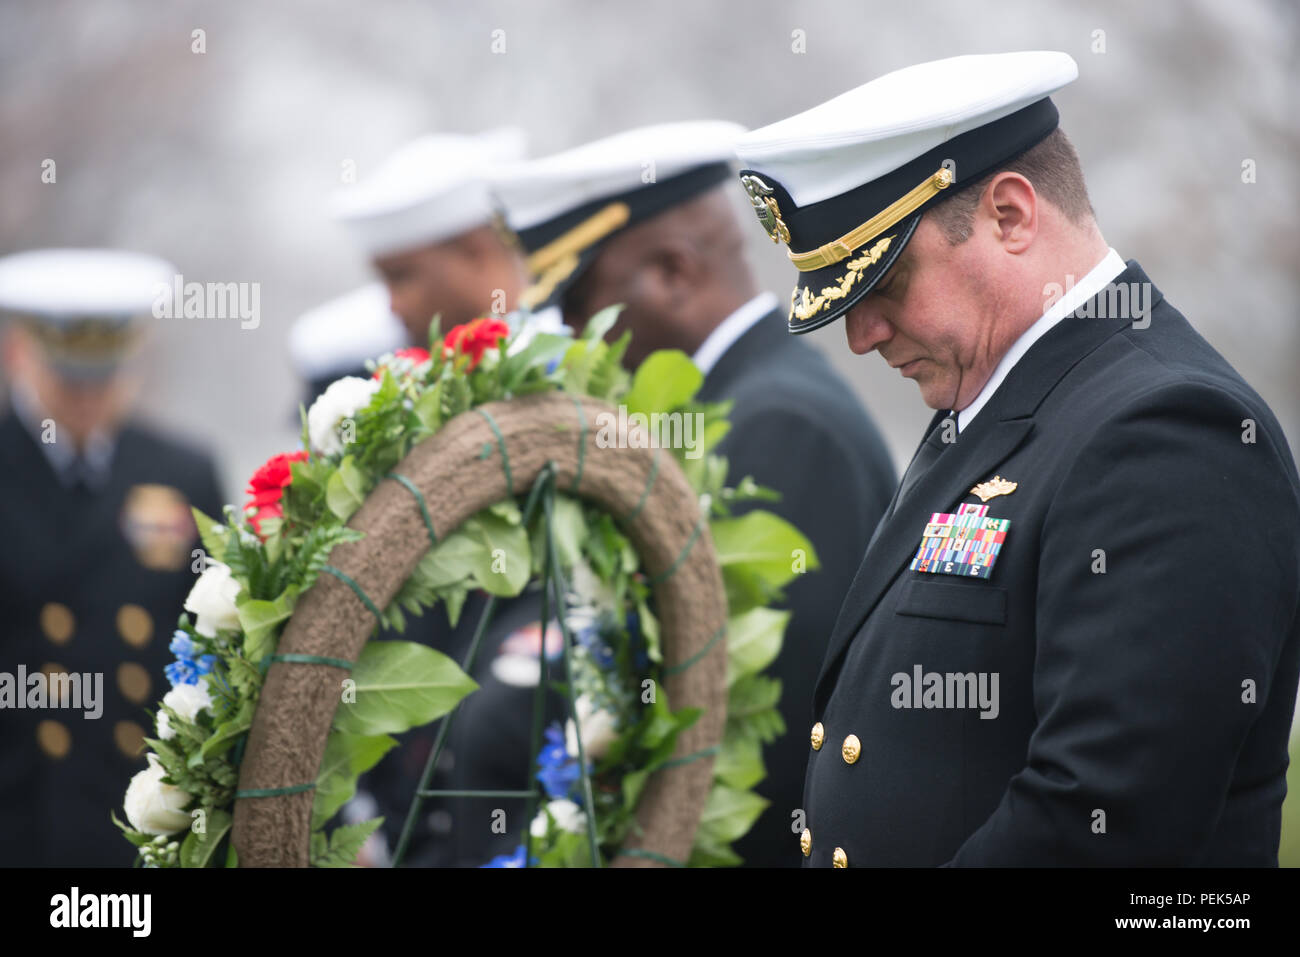 "Cmdr. Joseph Fraser bows his head during a ceremony to honor U.S. Navy Rear Adm. Grace Hopper at Arlington National Cemetery, Dec. 9, 2015, in Arlington, Va. Hopper was a pioneering computer scientist and was nicknamed ""Amazing Grace."" (U.S. Army photo by Rachel Larue/Arlington National Cemetery/released) - Stock Image"